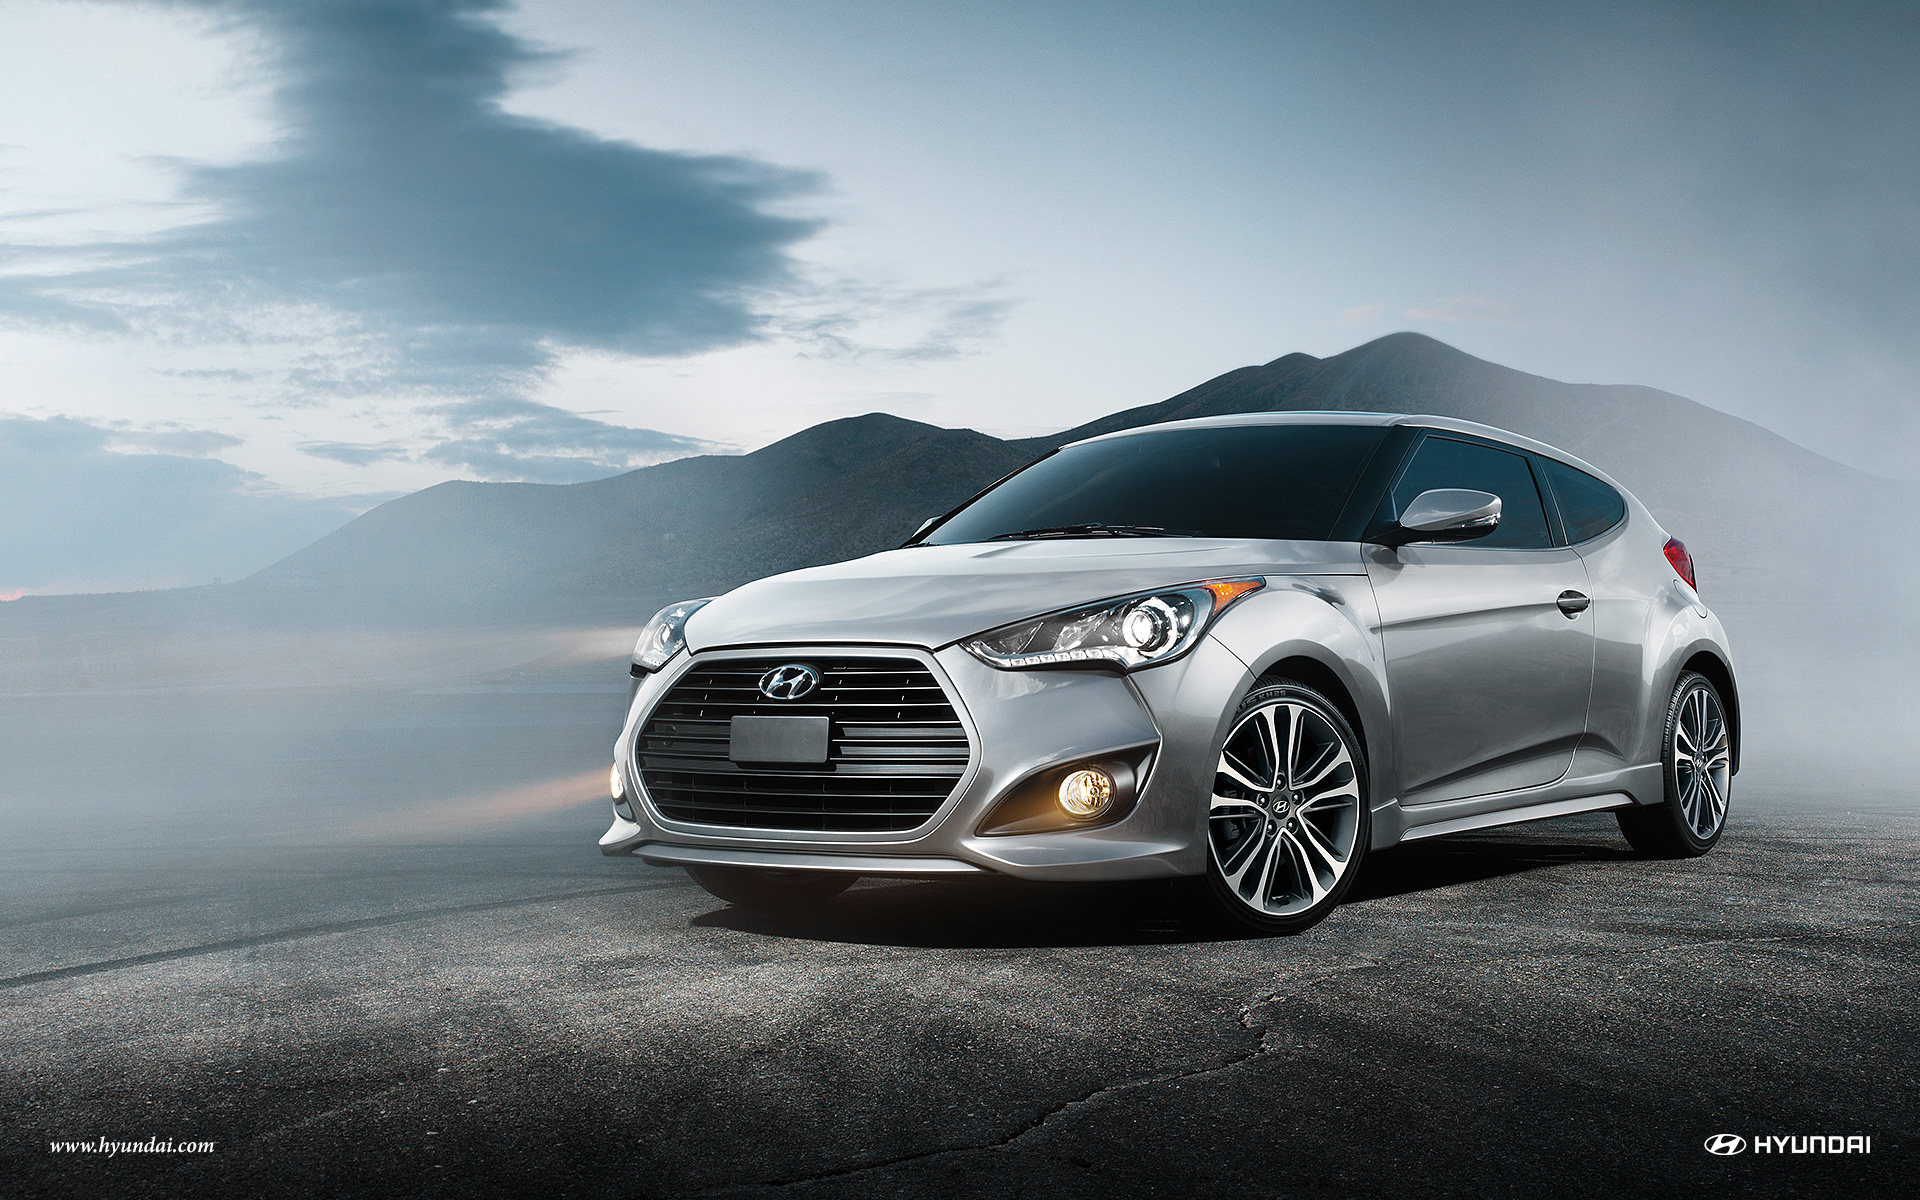 2017 Hyundai Veloster Exterior Side-Front